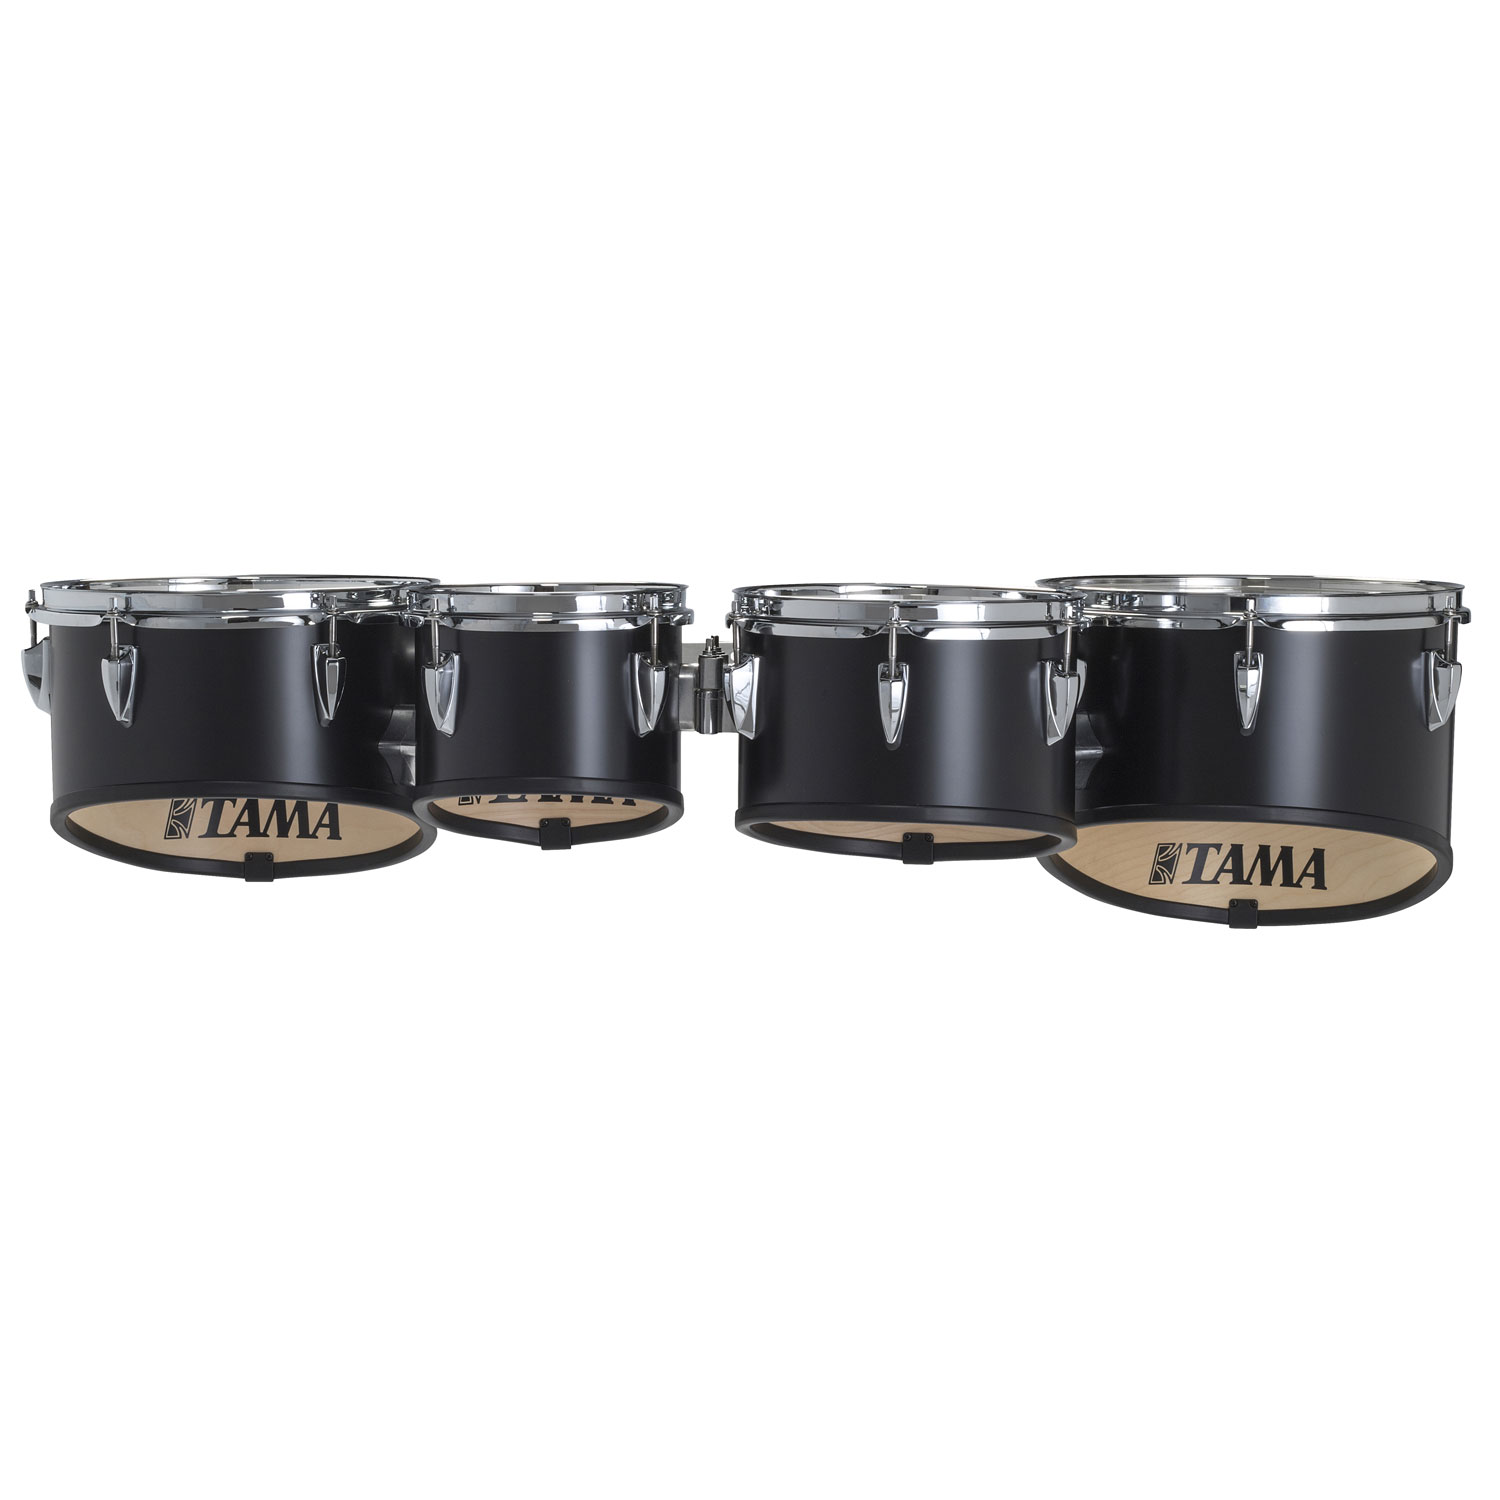 "Tama 8-10-12-13"" StarLight Marching Tenors in Satin Black Lacquer"